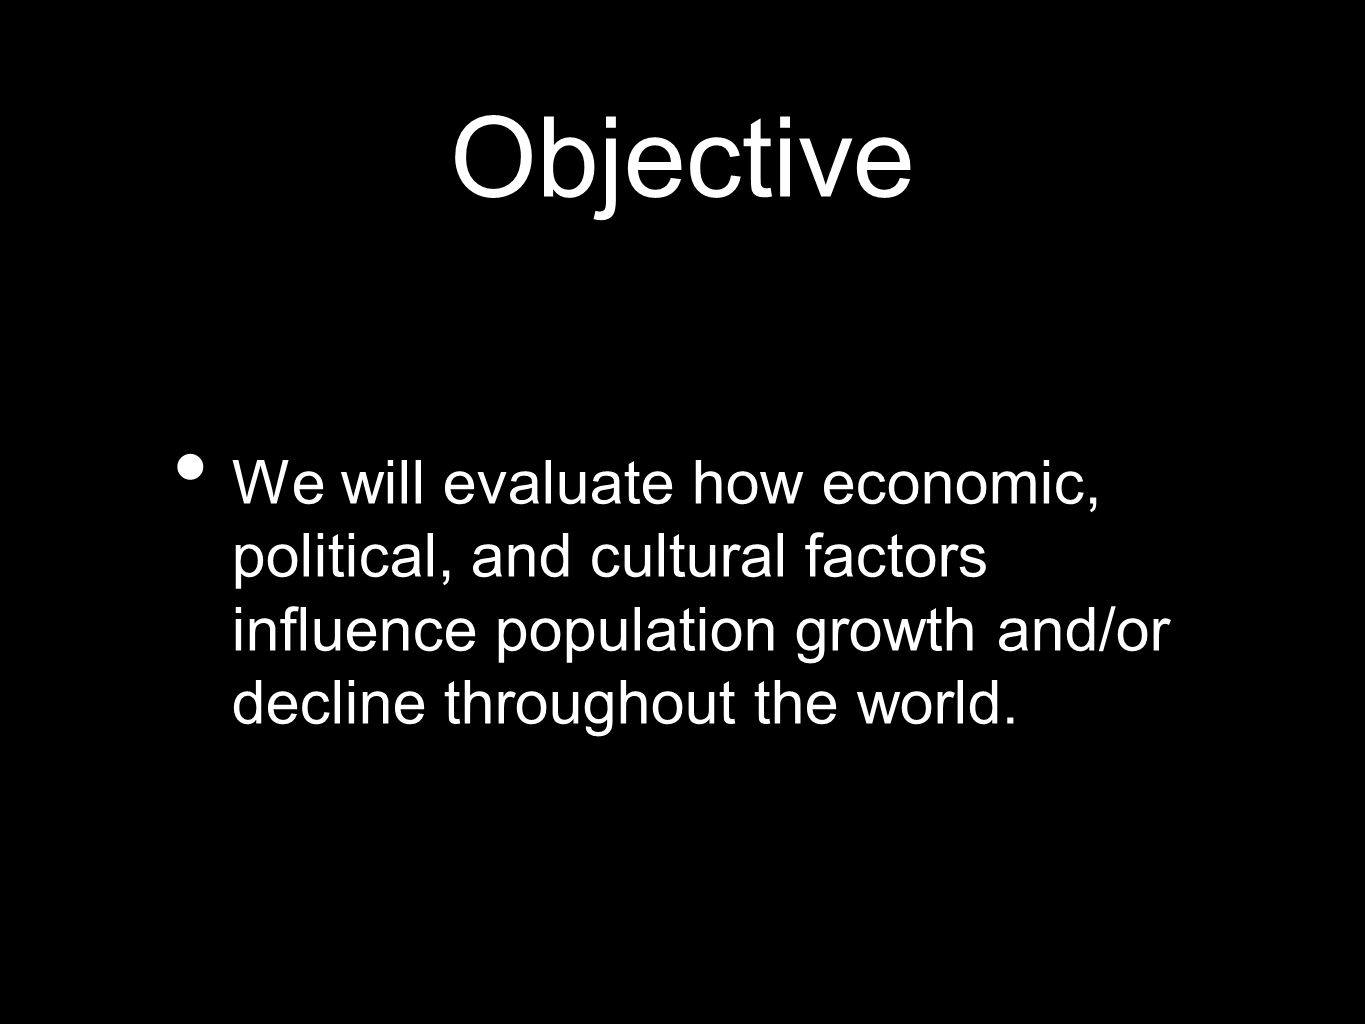 Objective We will evaluate how economic, political, and cultural factors influence population growth and/or decline throughout the world.